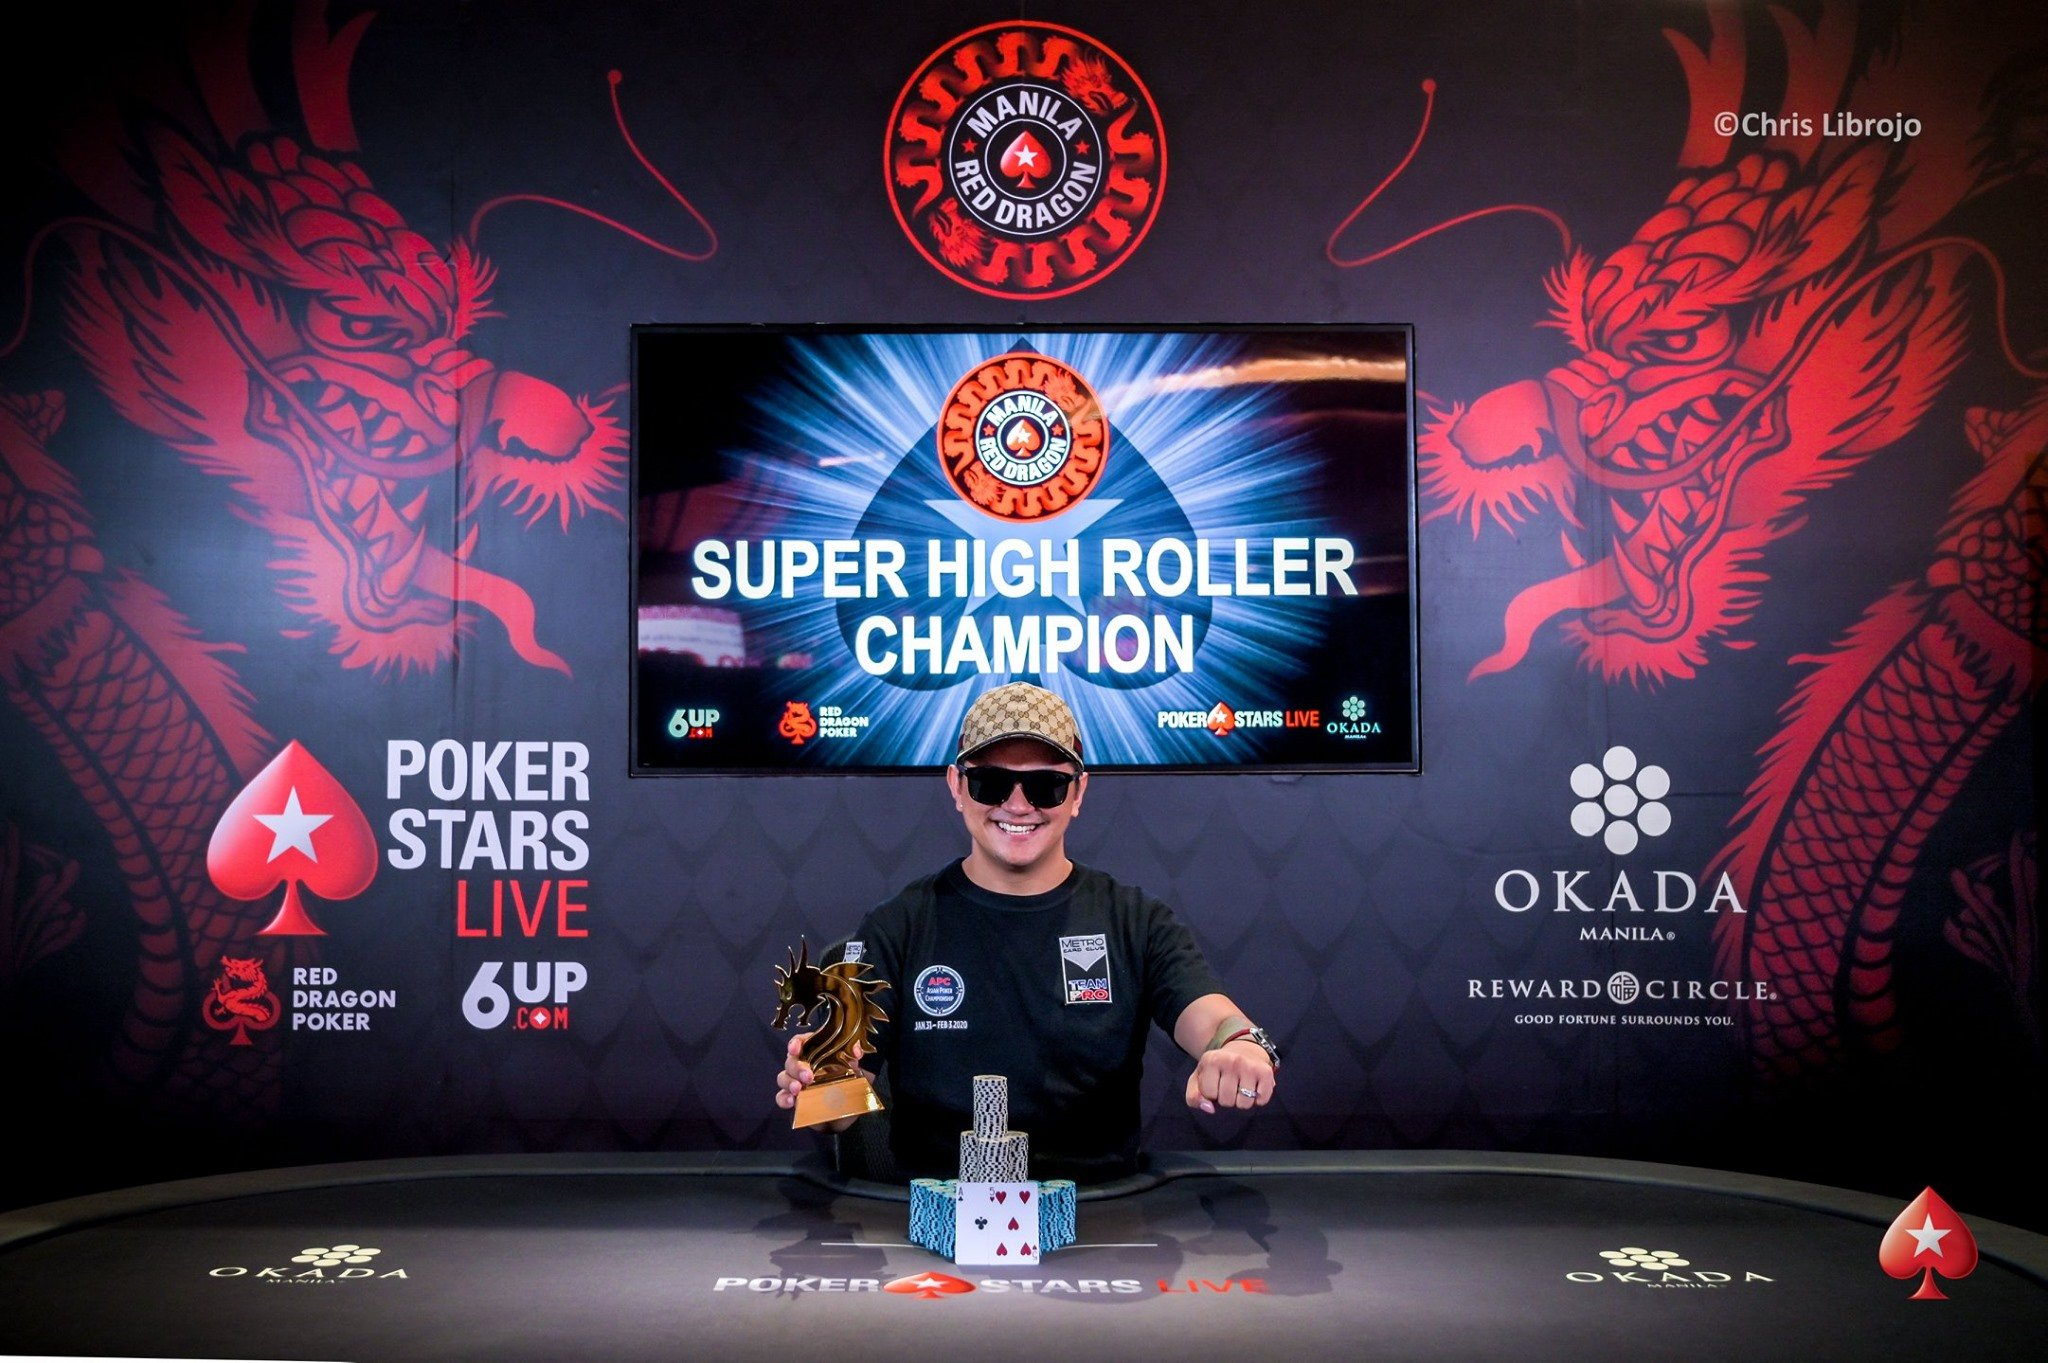 Red dragon Manila: Lester Edoc takes down Super High Roller for US$102,125; Sahil Agarwal wins Kickoff